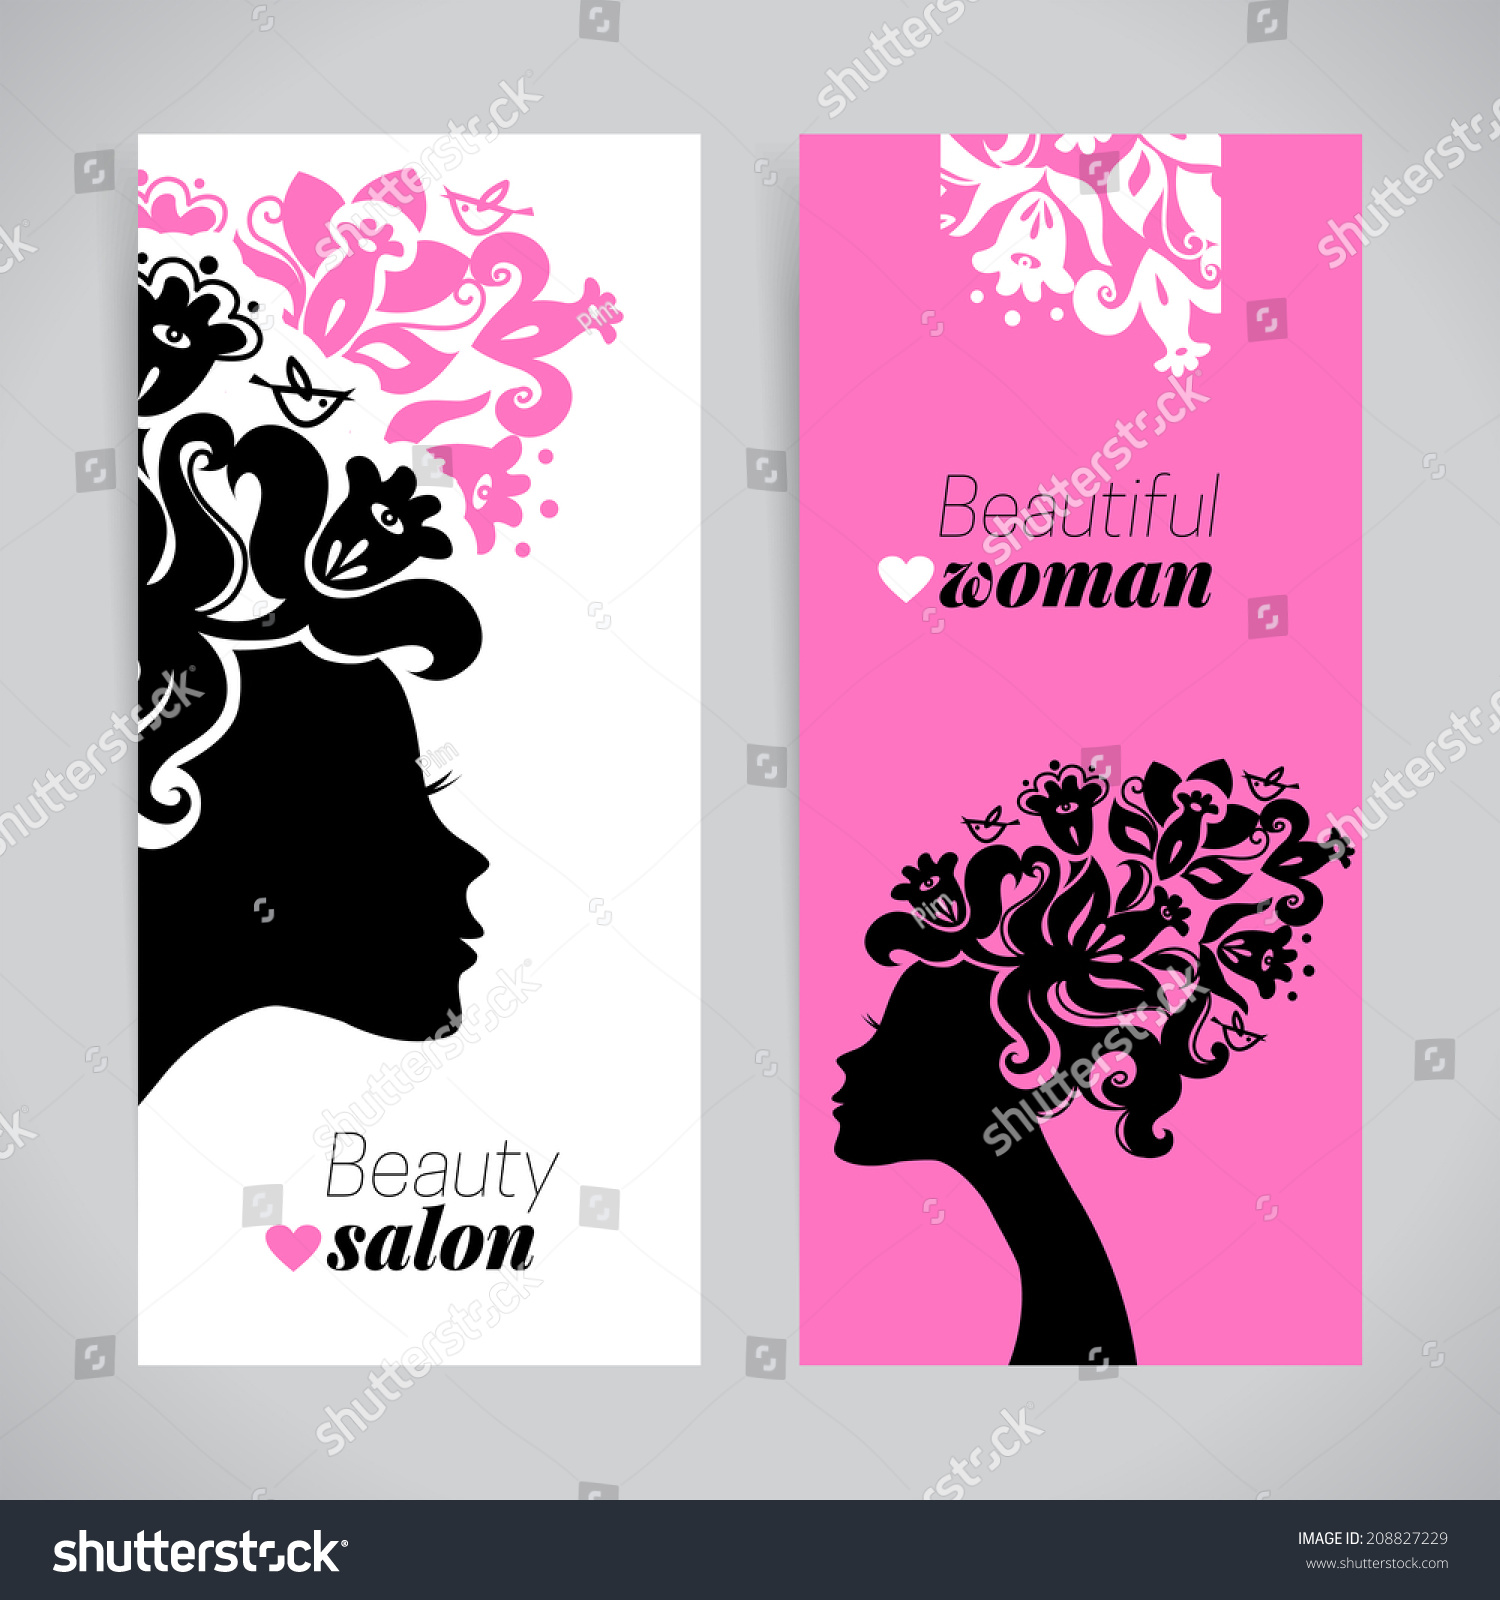 Banners beautiful women silhouettes flowers beauty stock for A beautiful you salon